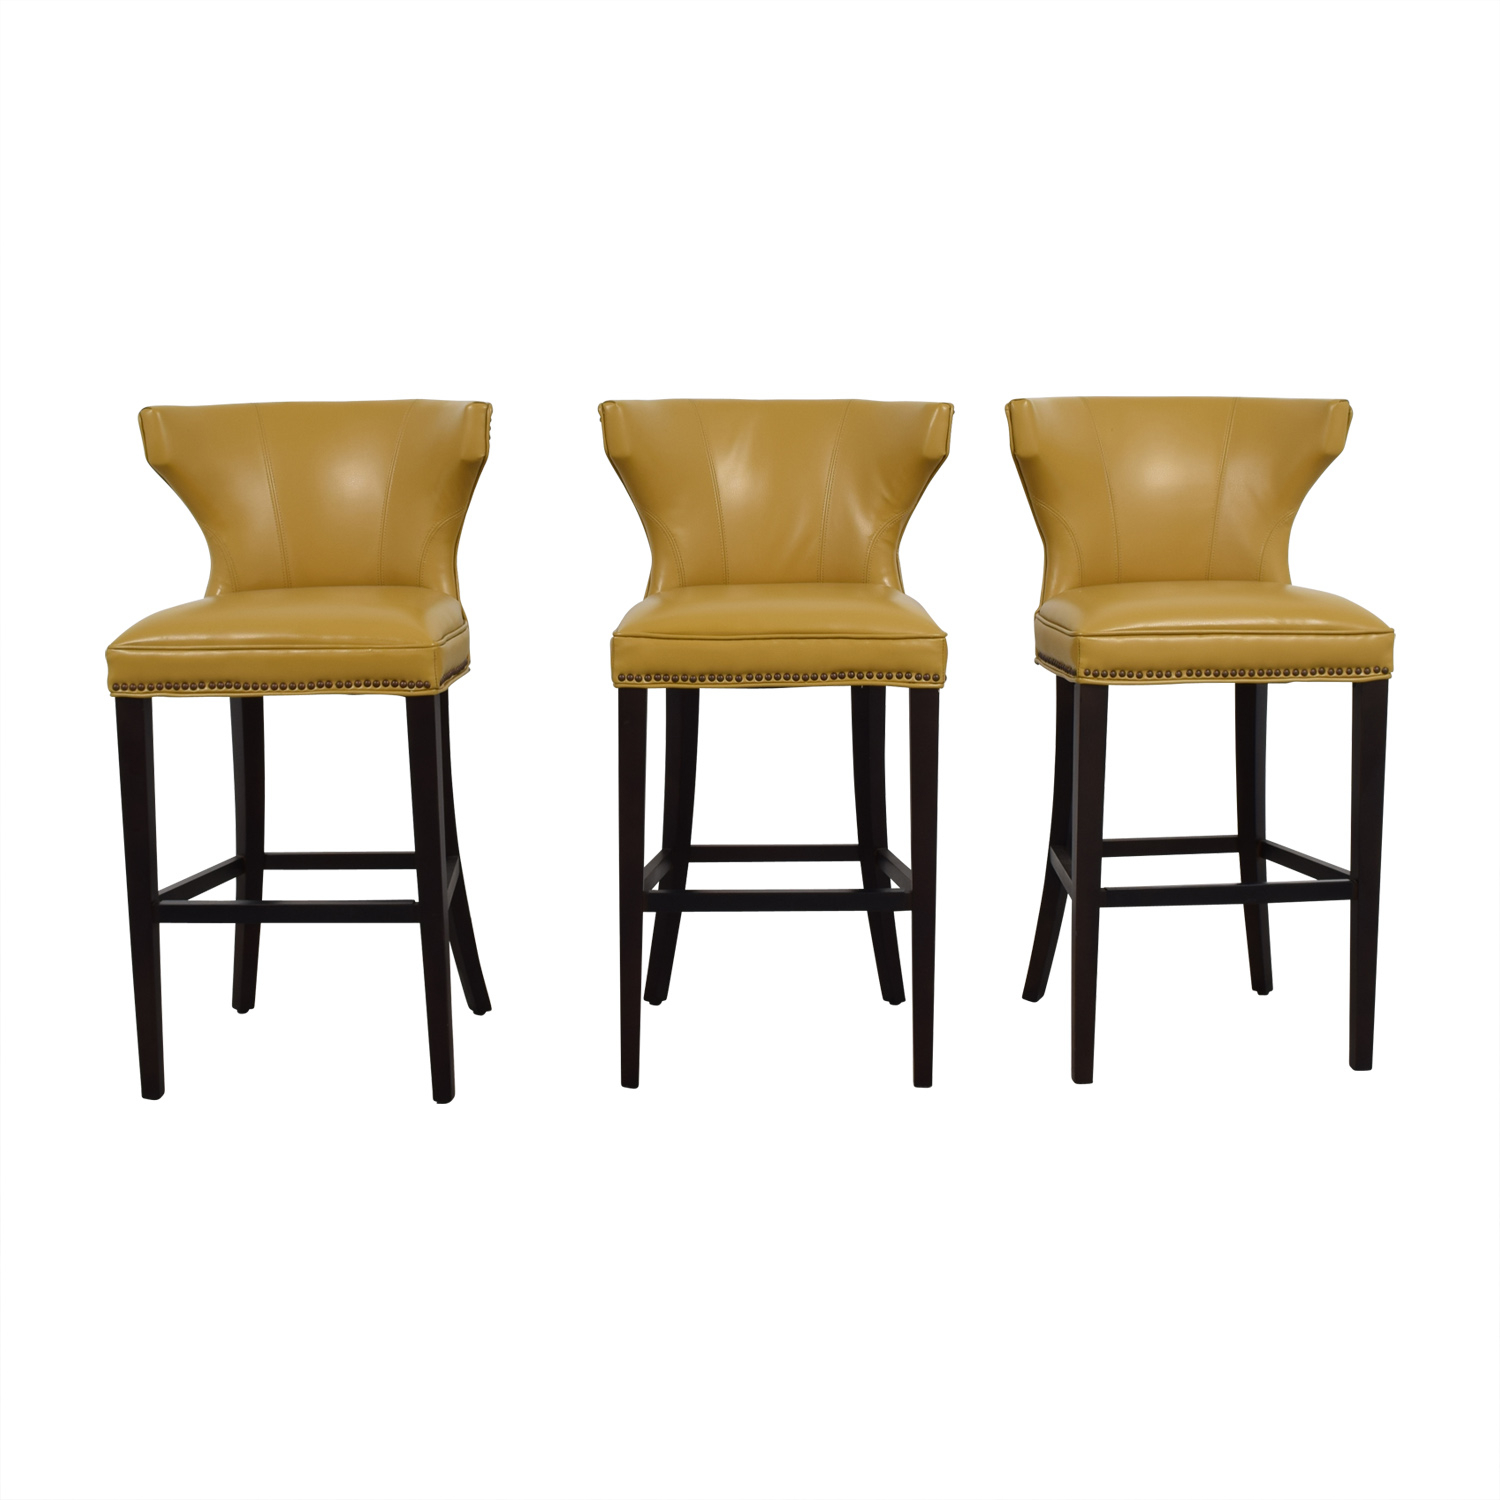 72% Off – Grandin Road Grandin Road Mustard Yellow Bar Stools / Chairs In Grandin Leather Sofa Chairs (Image 1 of 20)